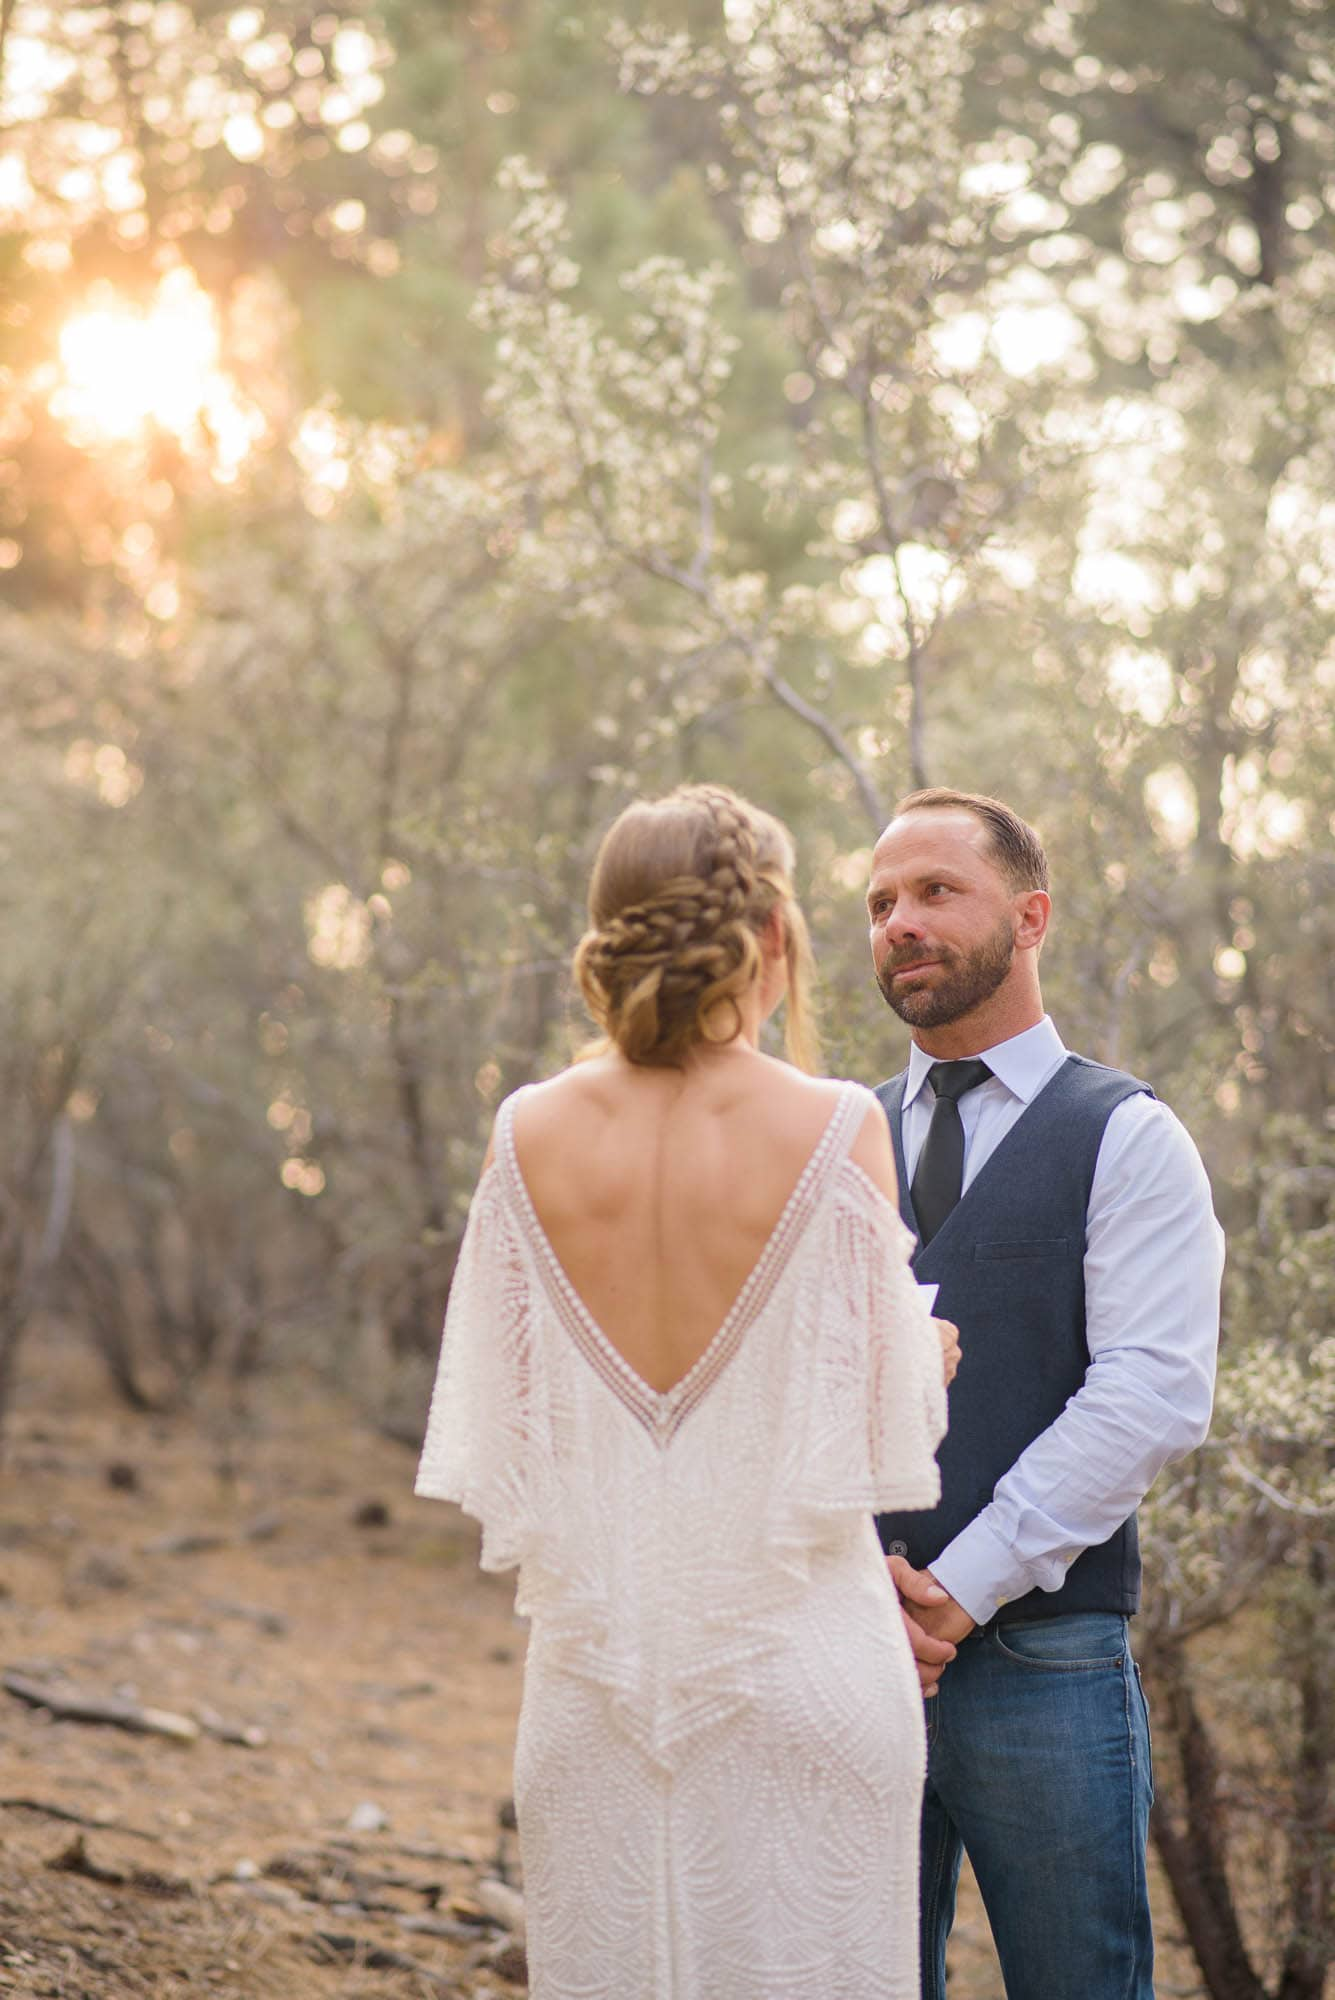 023_Alan_and_Heidi_Big_Bear_Elopement_Holly_Sean